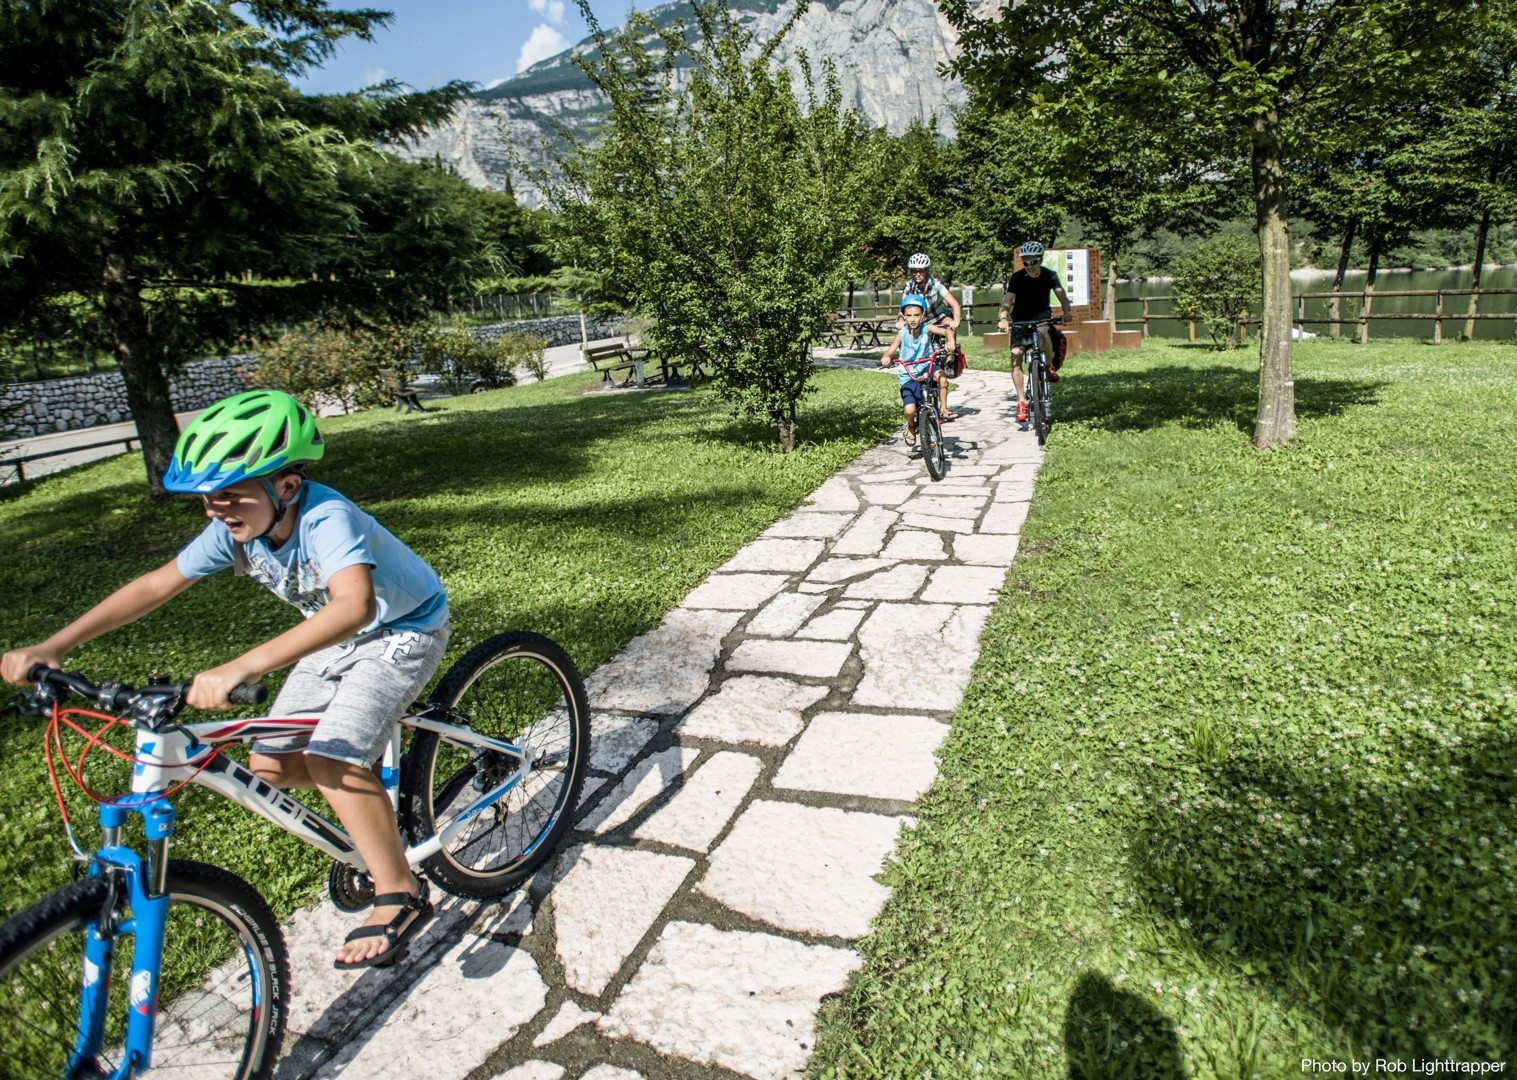 family-cycling-supported-italy-lake-garda.jpg - Northern Italy - Gentle Via Claudia - Supported Family Cycling Holiday - Italia Leisure and Family Cycling